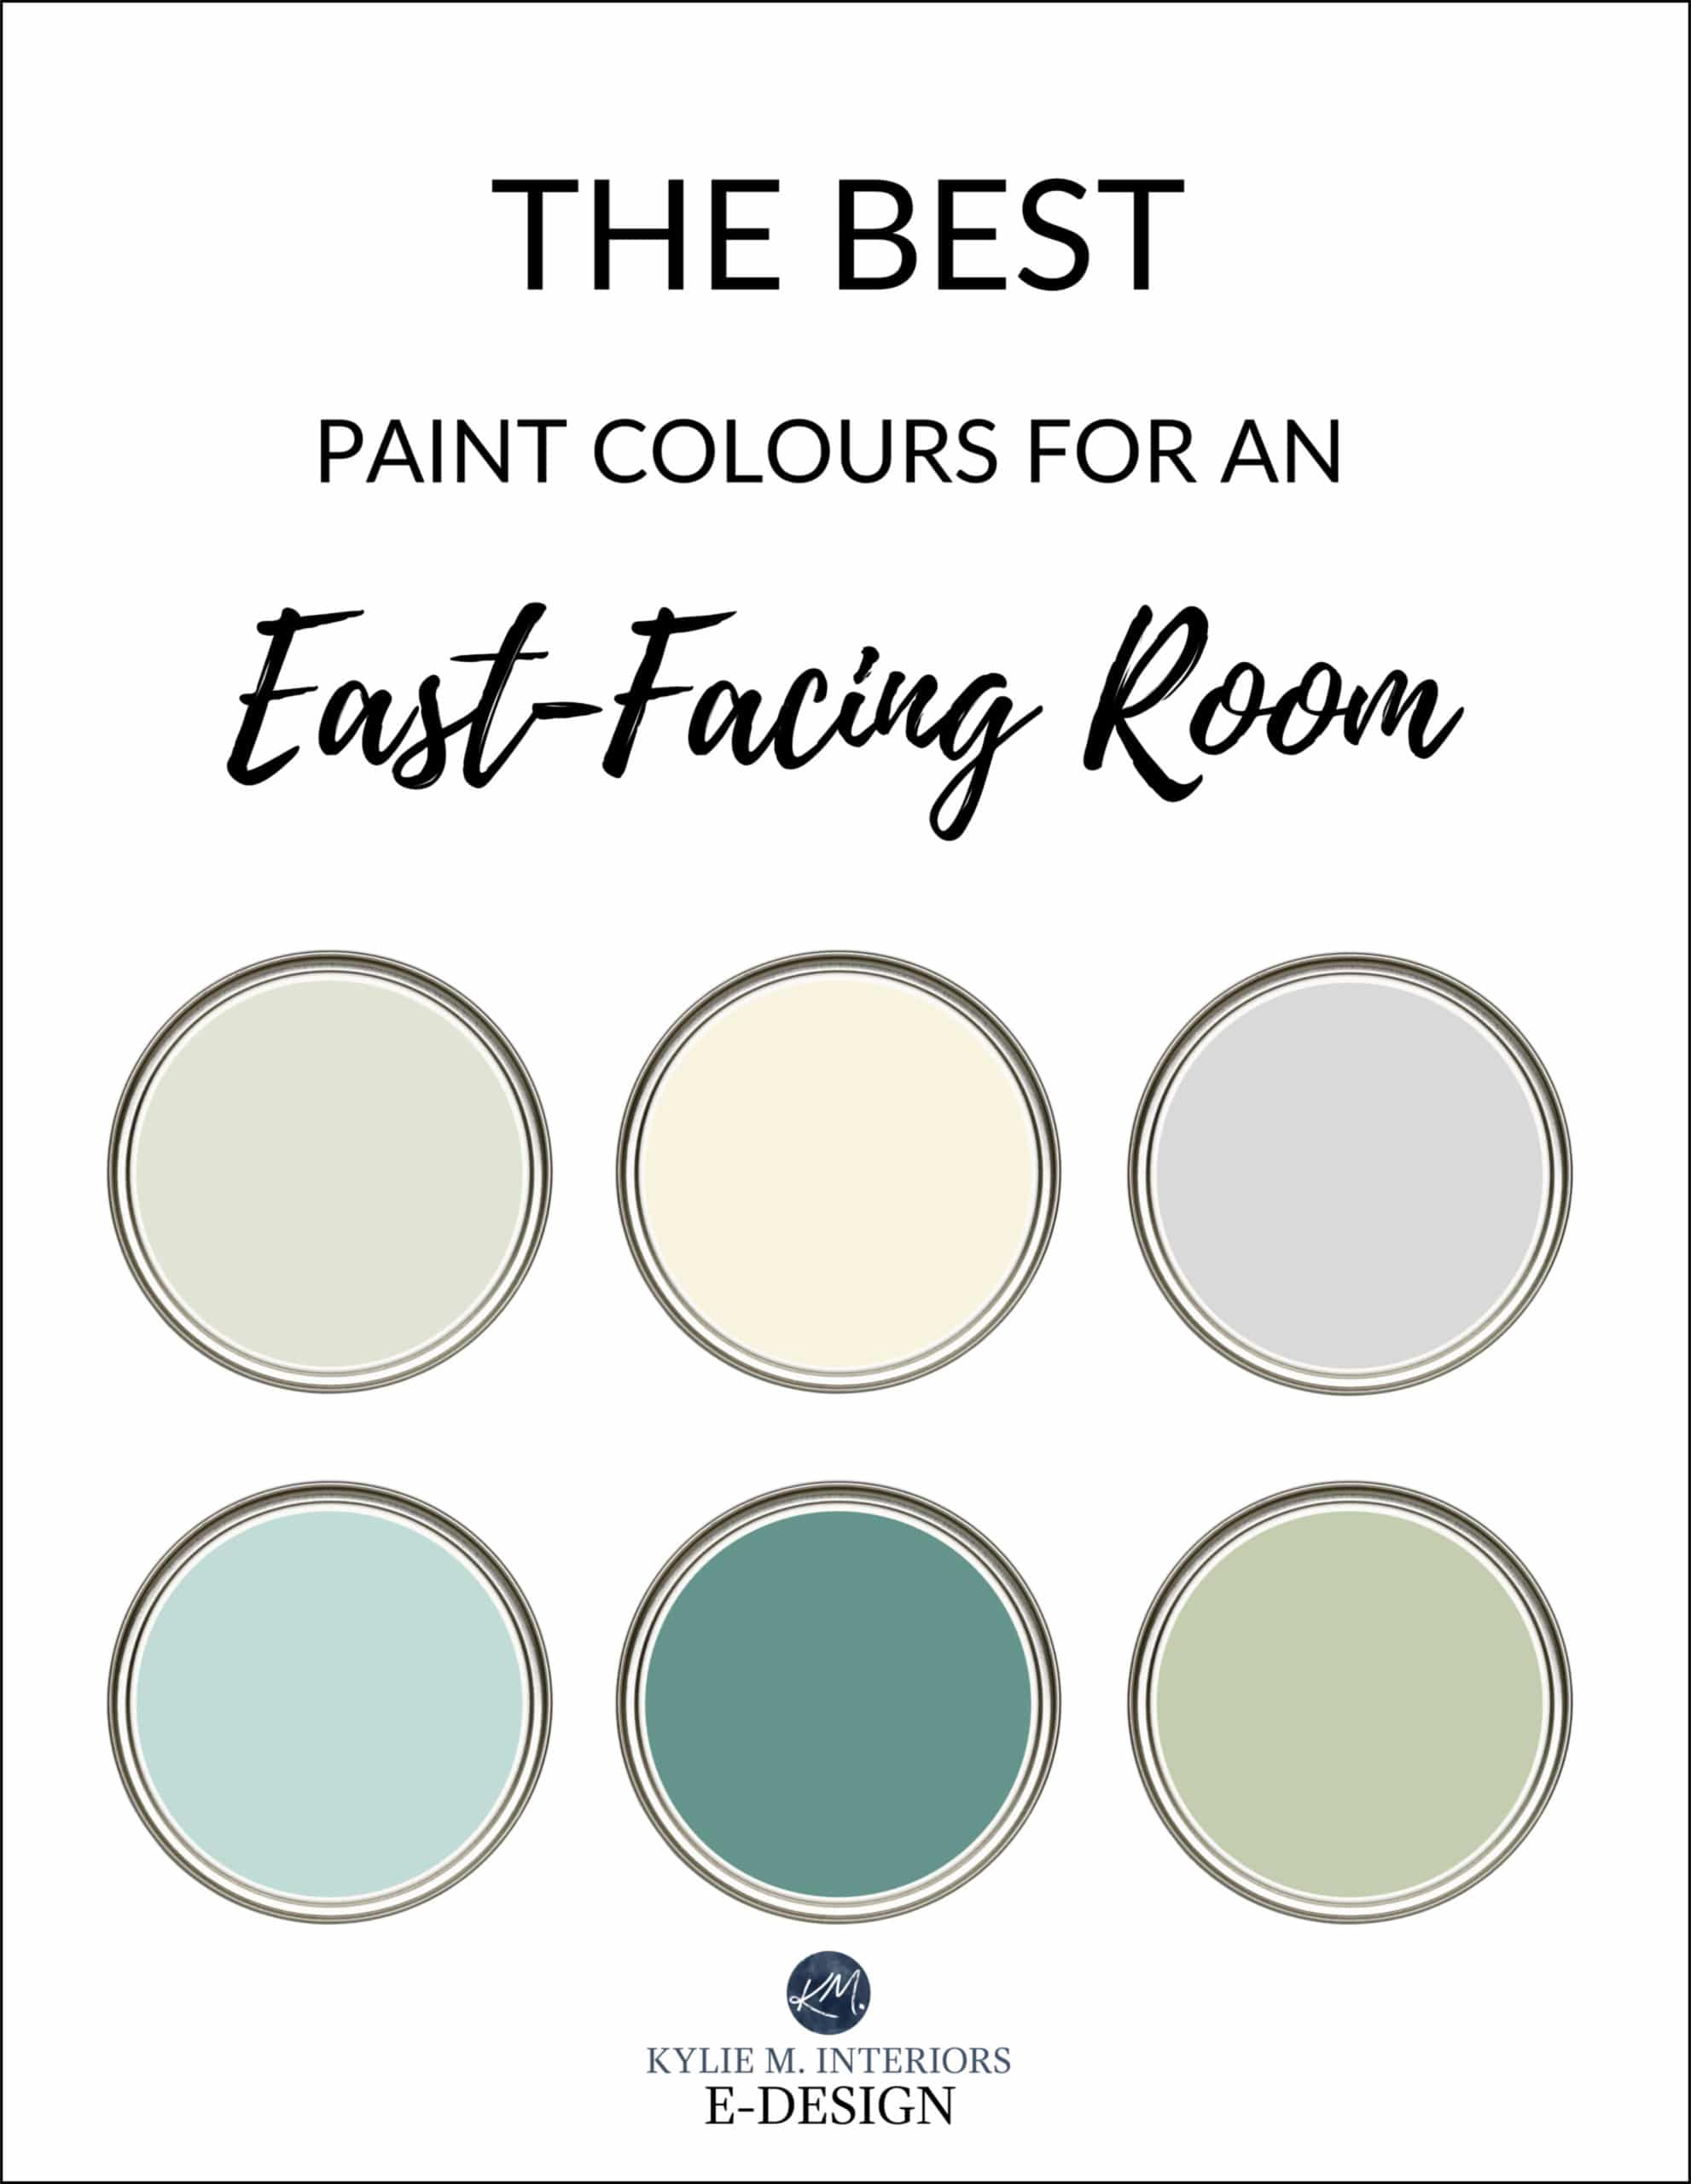 The best paint colors for east facing, eastern exposure room. Kylie M Interiors Edesign, online paint colour advice. Benjamin and Sherwin